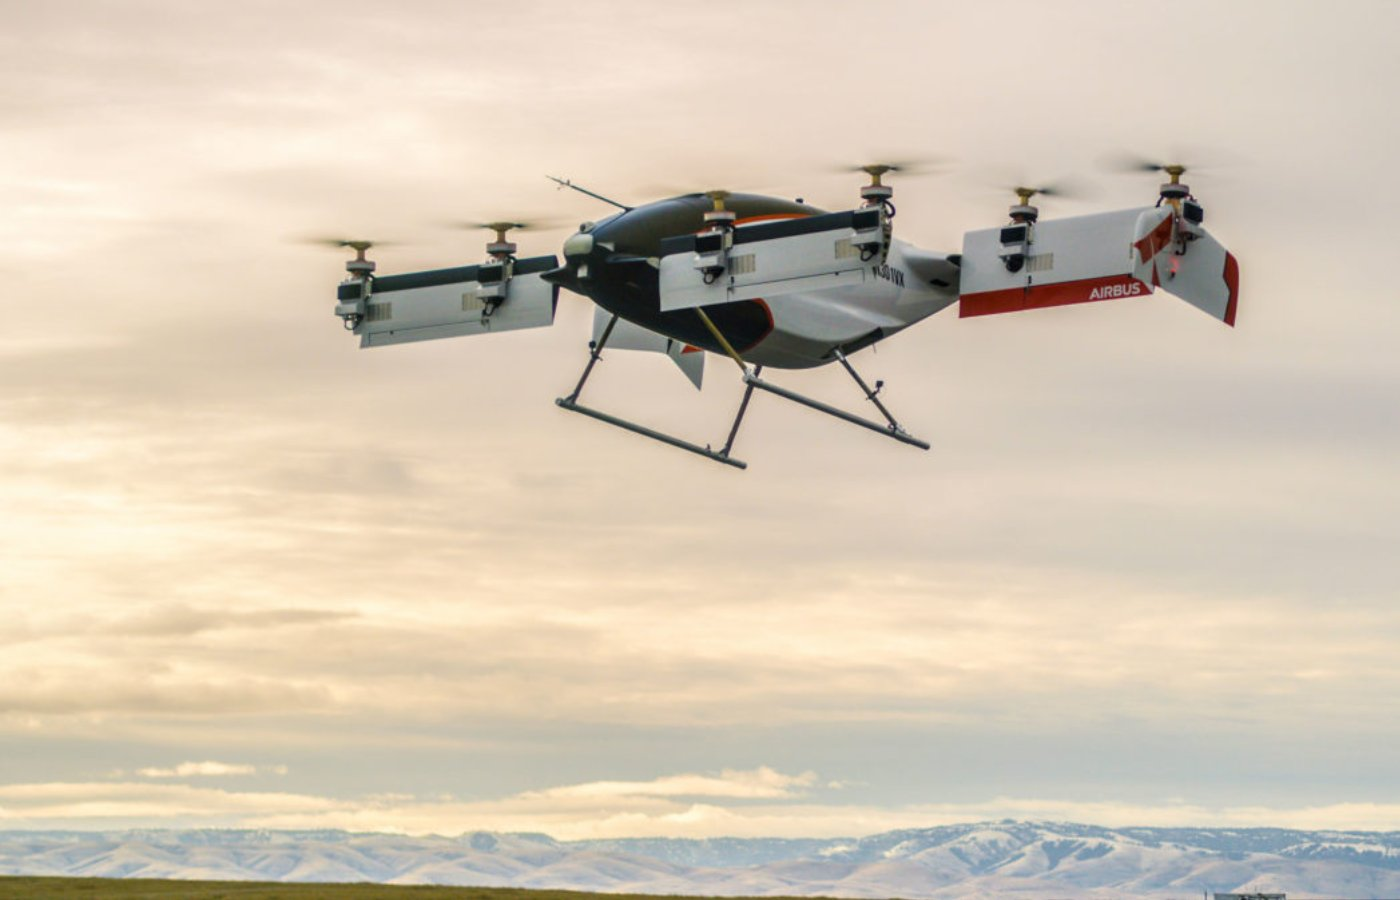 A3 resumed the Vahana flight test campaign this summer after having paused it to upgrade the aircraft's electric motors. As of mid-August, Vahana had completed more than 25 flights in hover mode. A3 Photo